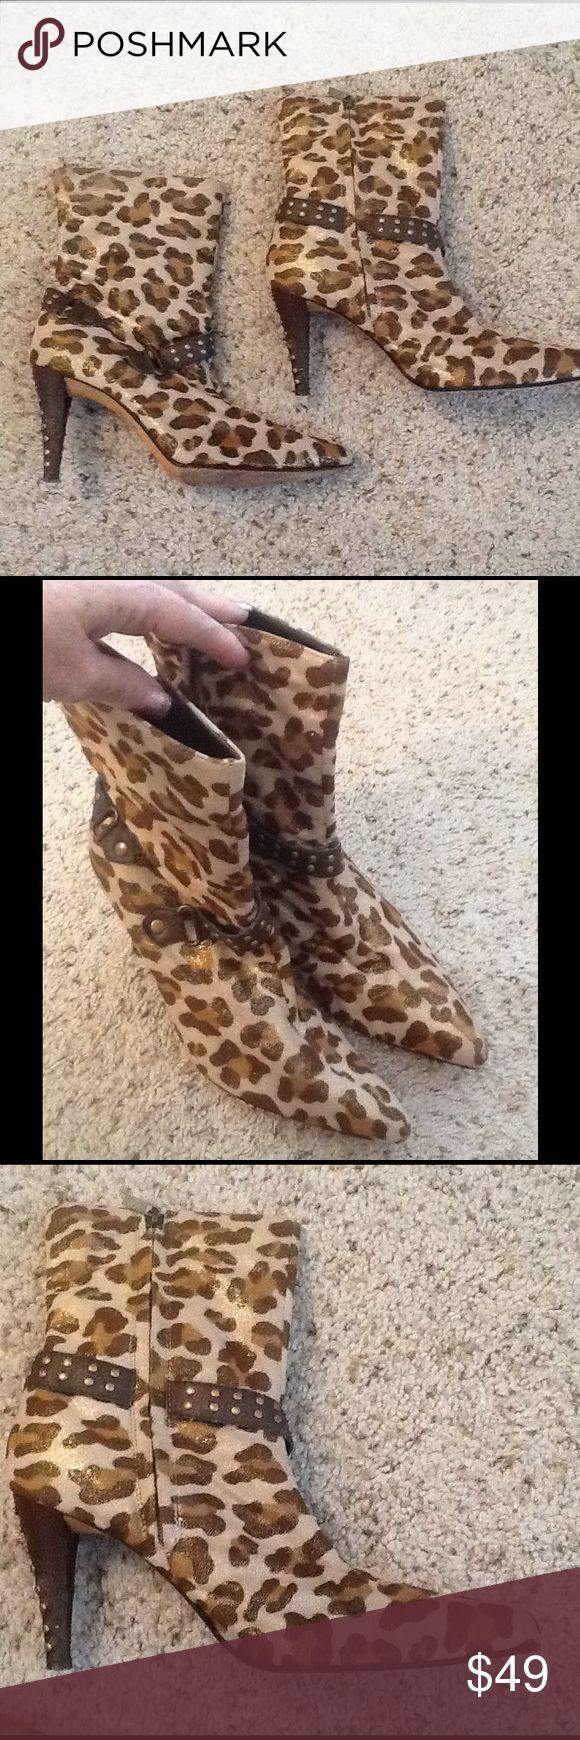 KATHY Van ZEELAND LEOPARD SHEEN ANKLE BOOTS sz 8.5 KATHY VAN ZEELAND sz 8.5 Leopard ankle boots with a gorgeous sheen!  Excellent condition.  Will ship right away.  Check out my other designer items Kathy Van Zeeland Shoes Ankle Boots & Booties